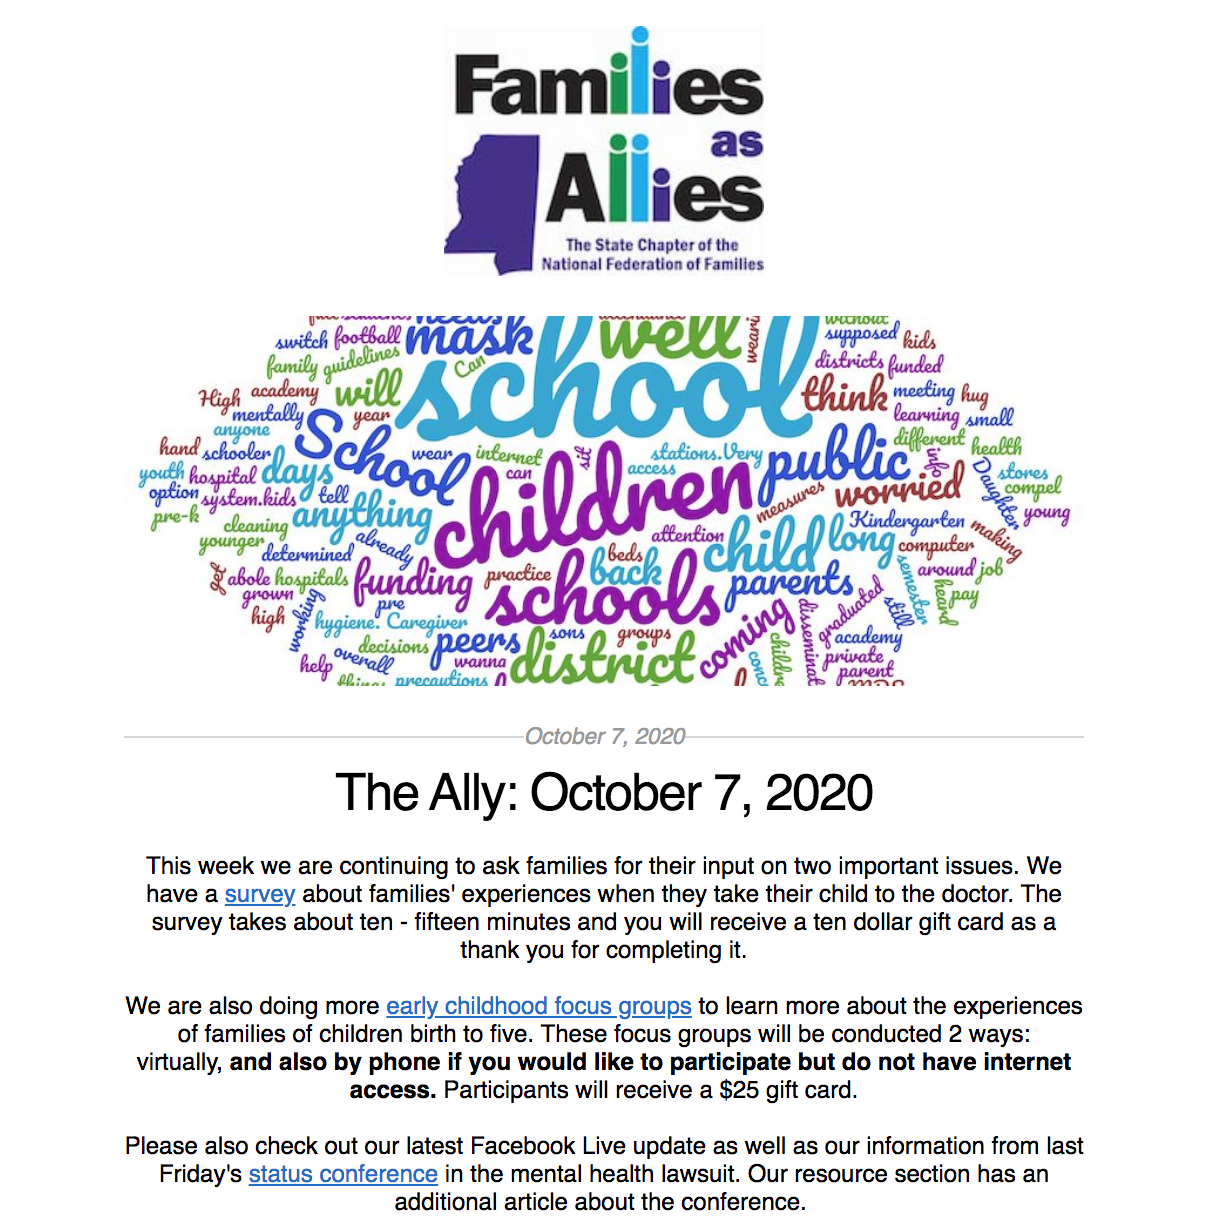 The Ally: October 7, 2020